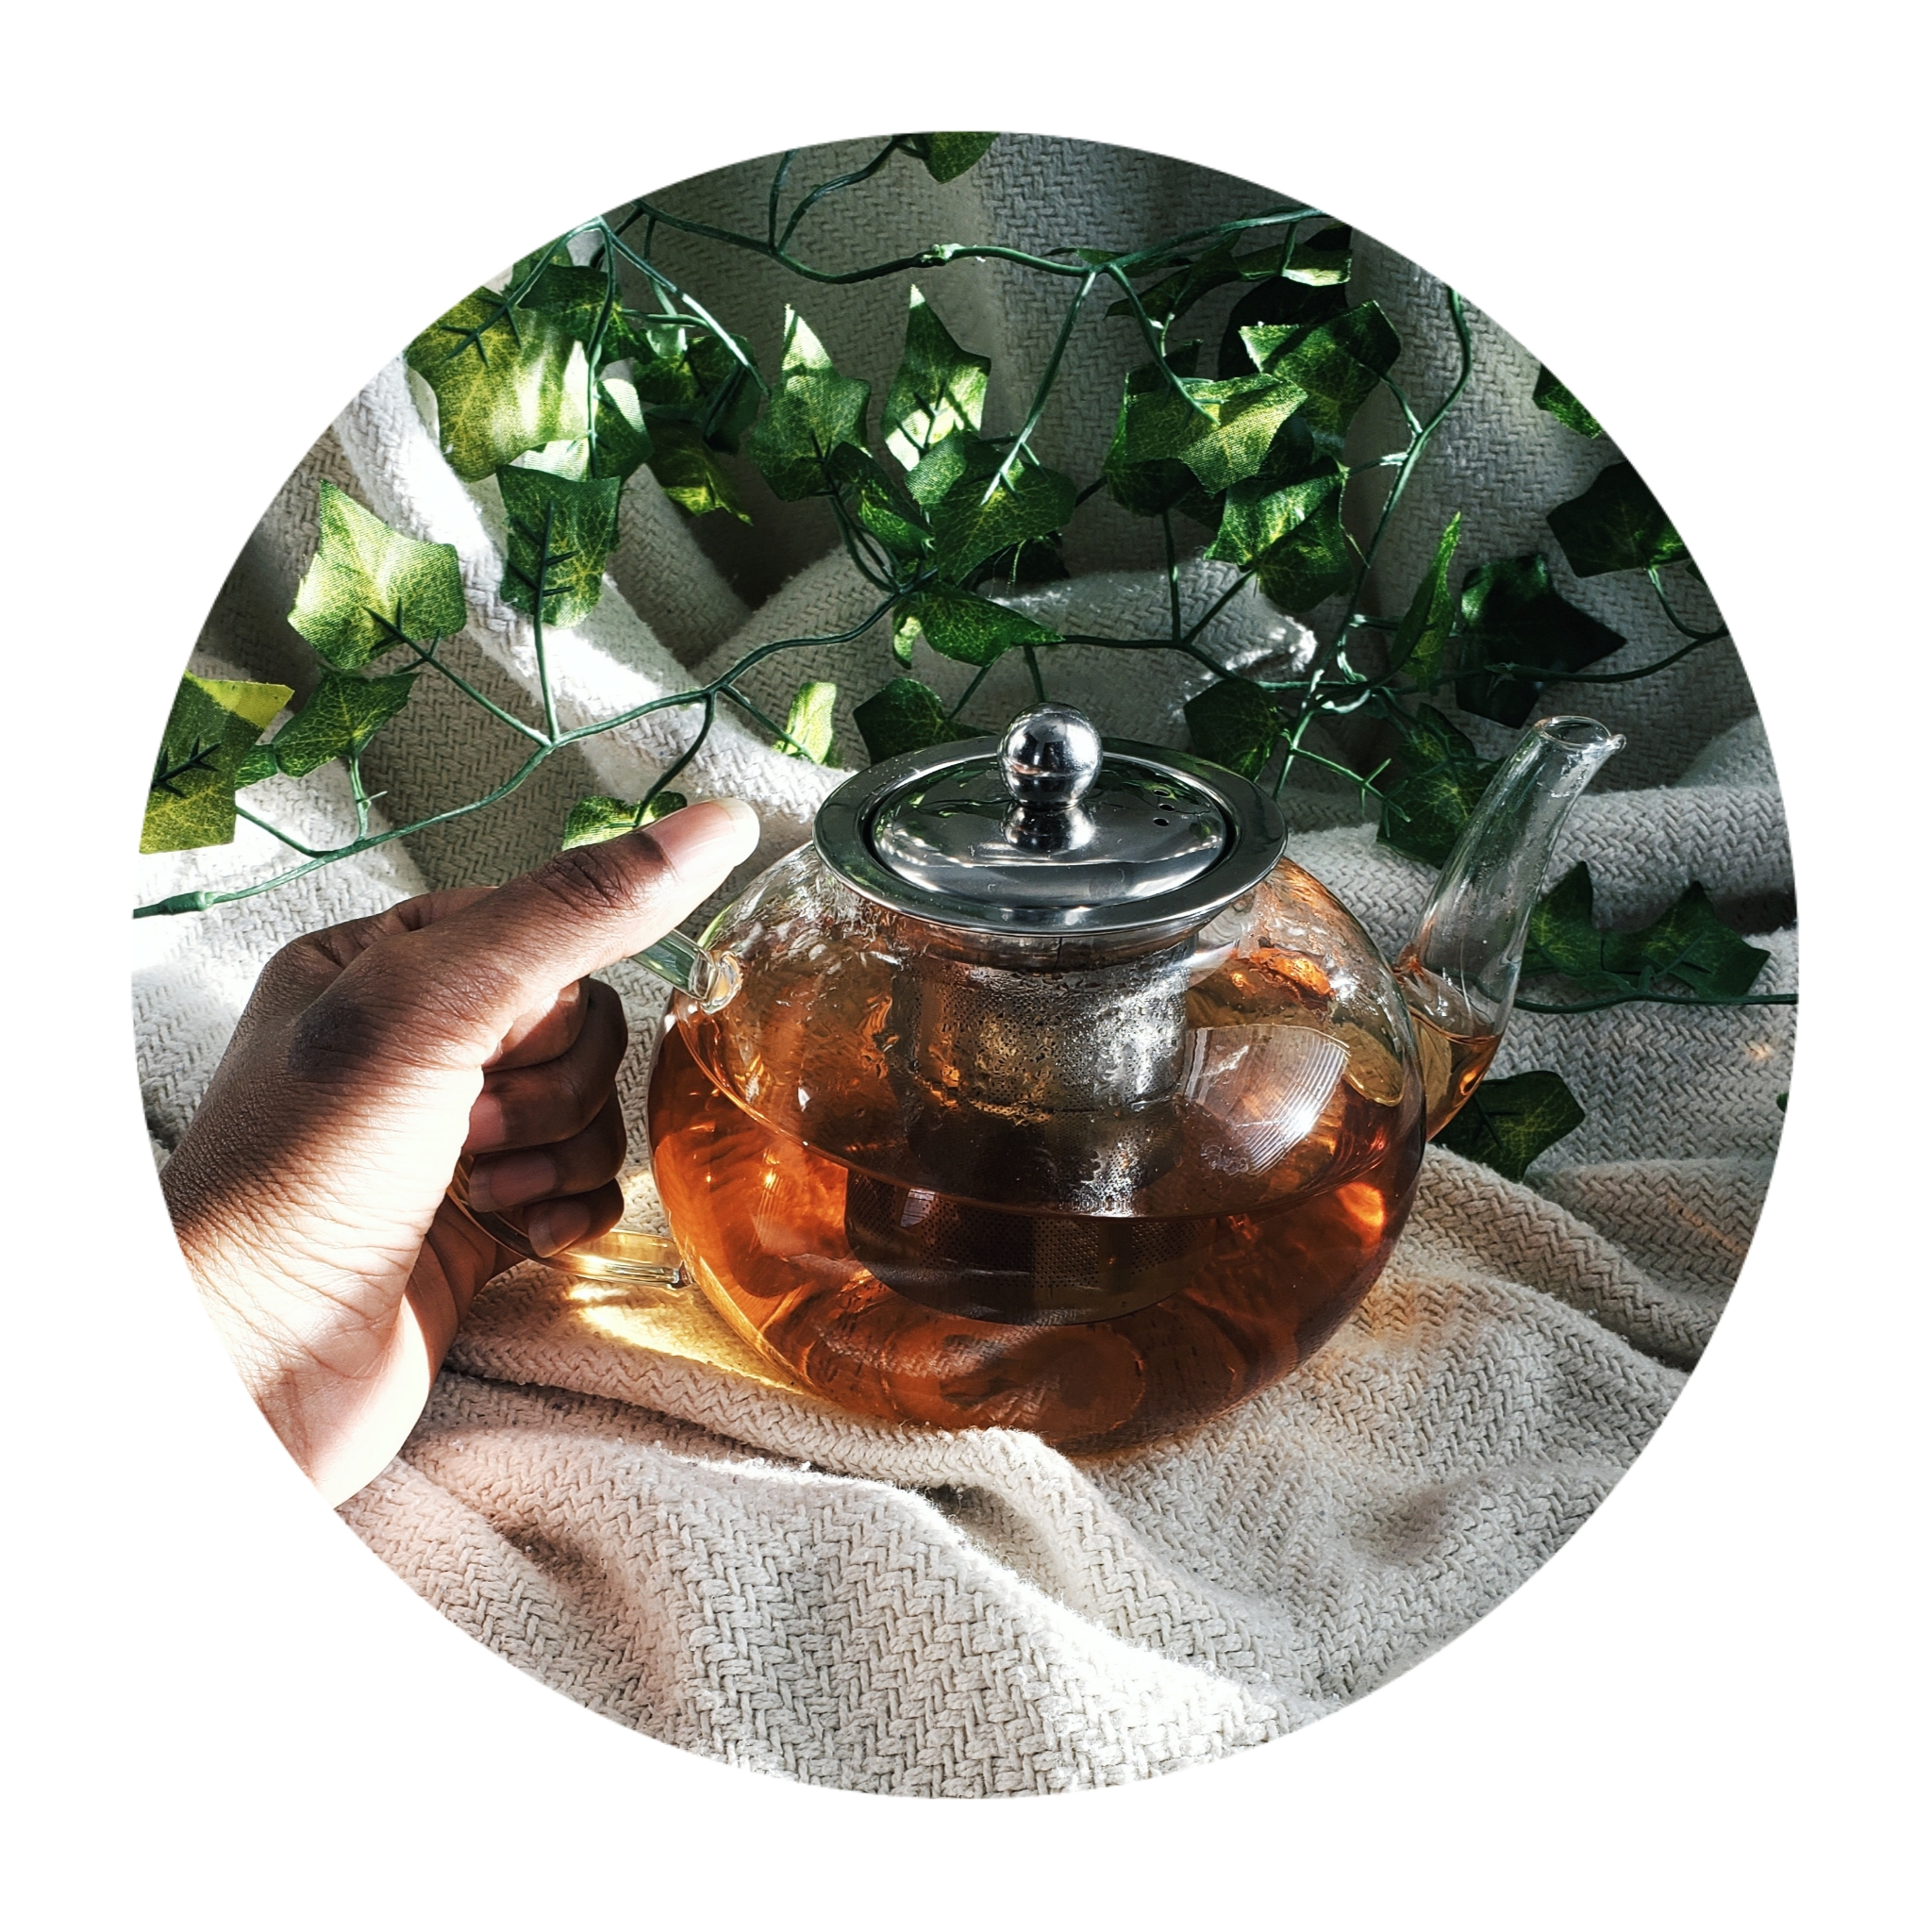 TEA PRESENCE CEREMONY - I guide you through an experience with tea + presence. You will tune into all of your senses, allowing yourself to anchor right into the moment. You will also be educated about the tea you are drinking (if in person).